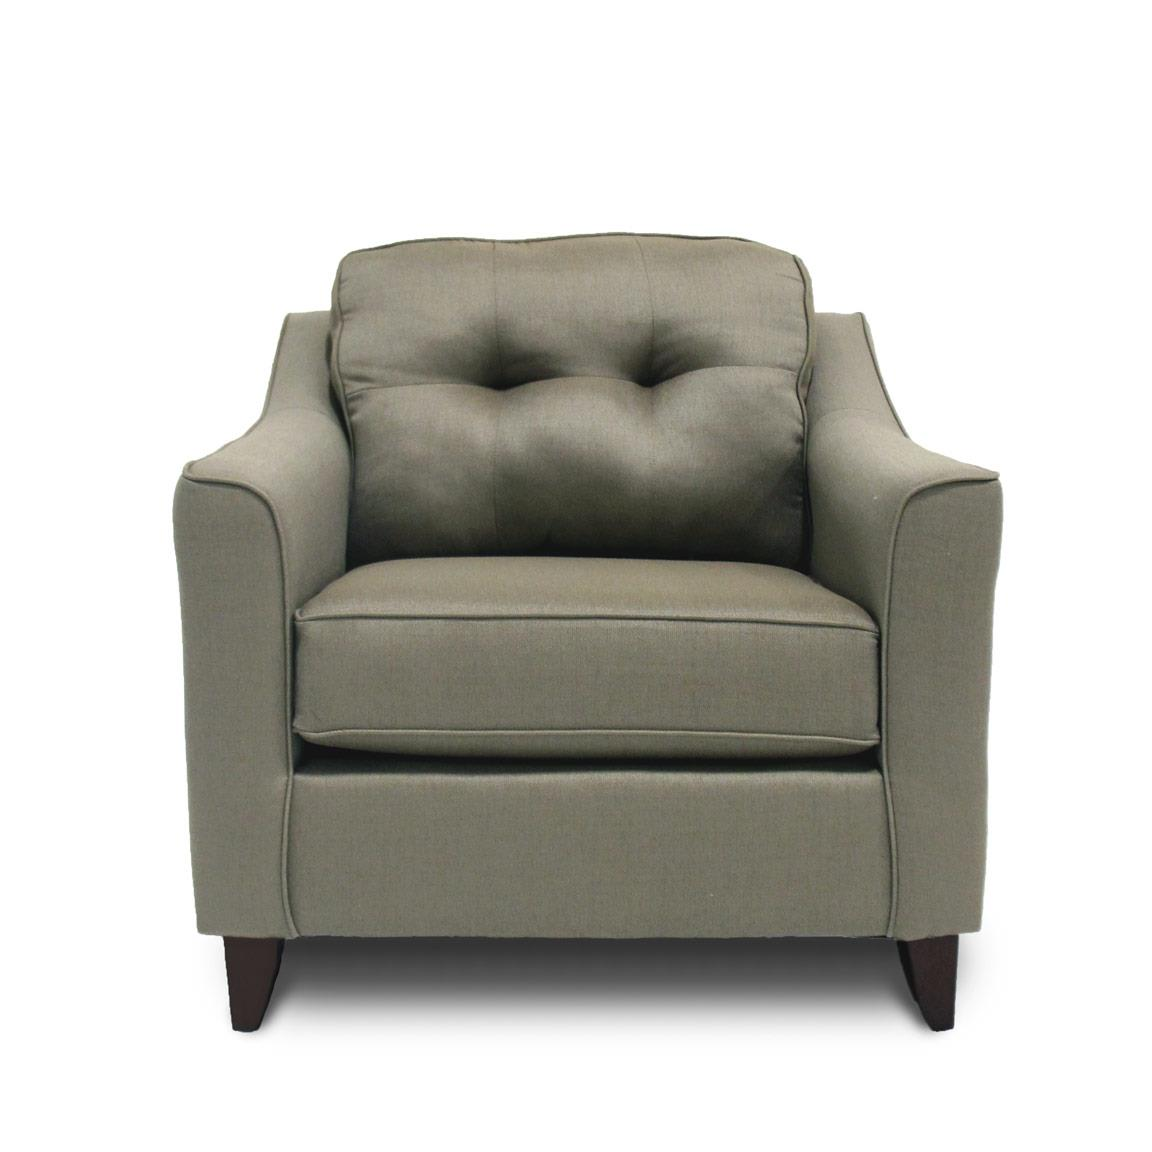 Washington Furniture Stoked Stoked Truffle Chair - Item Number: WASH-4741-583